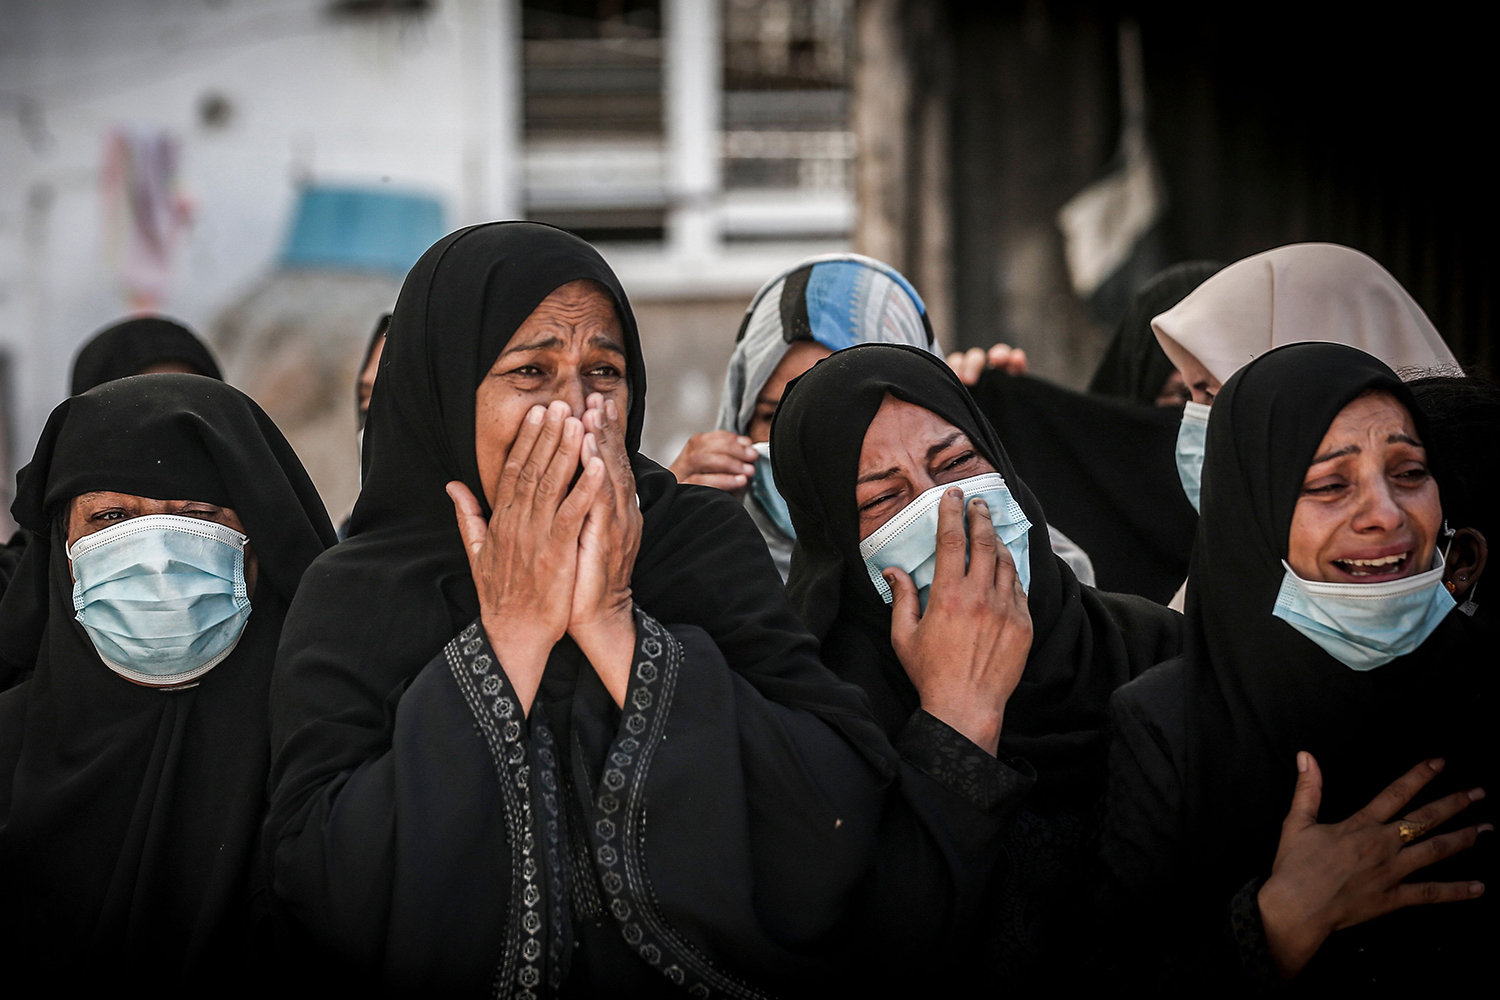 At a funeral in Deir al-Balah in the central Gaza Strip on Sept. 27, relatives mourn two Palestinian brothers who were shot at sea while fishing to the south of the Gaza Strip bordering Egypt. MAHMUD HAMS/AFP via Getty Images